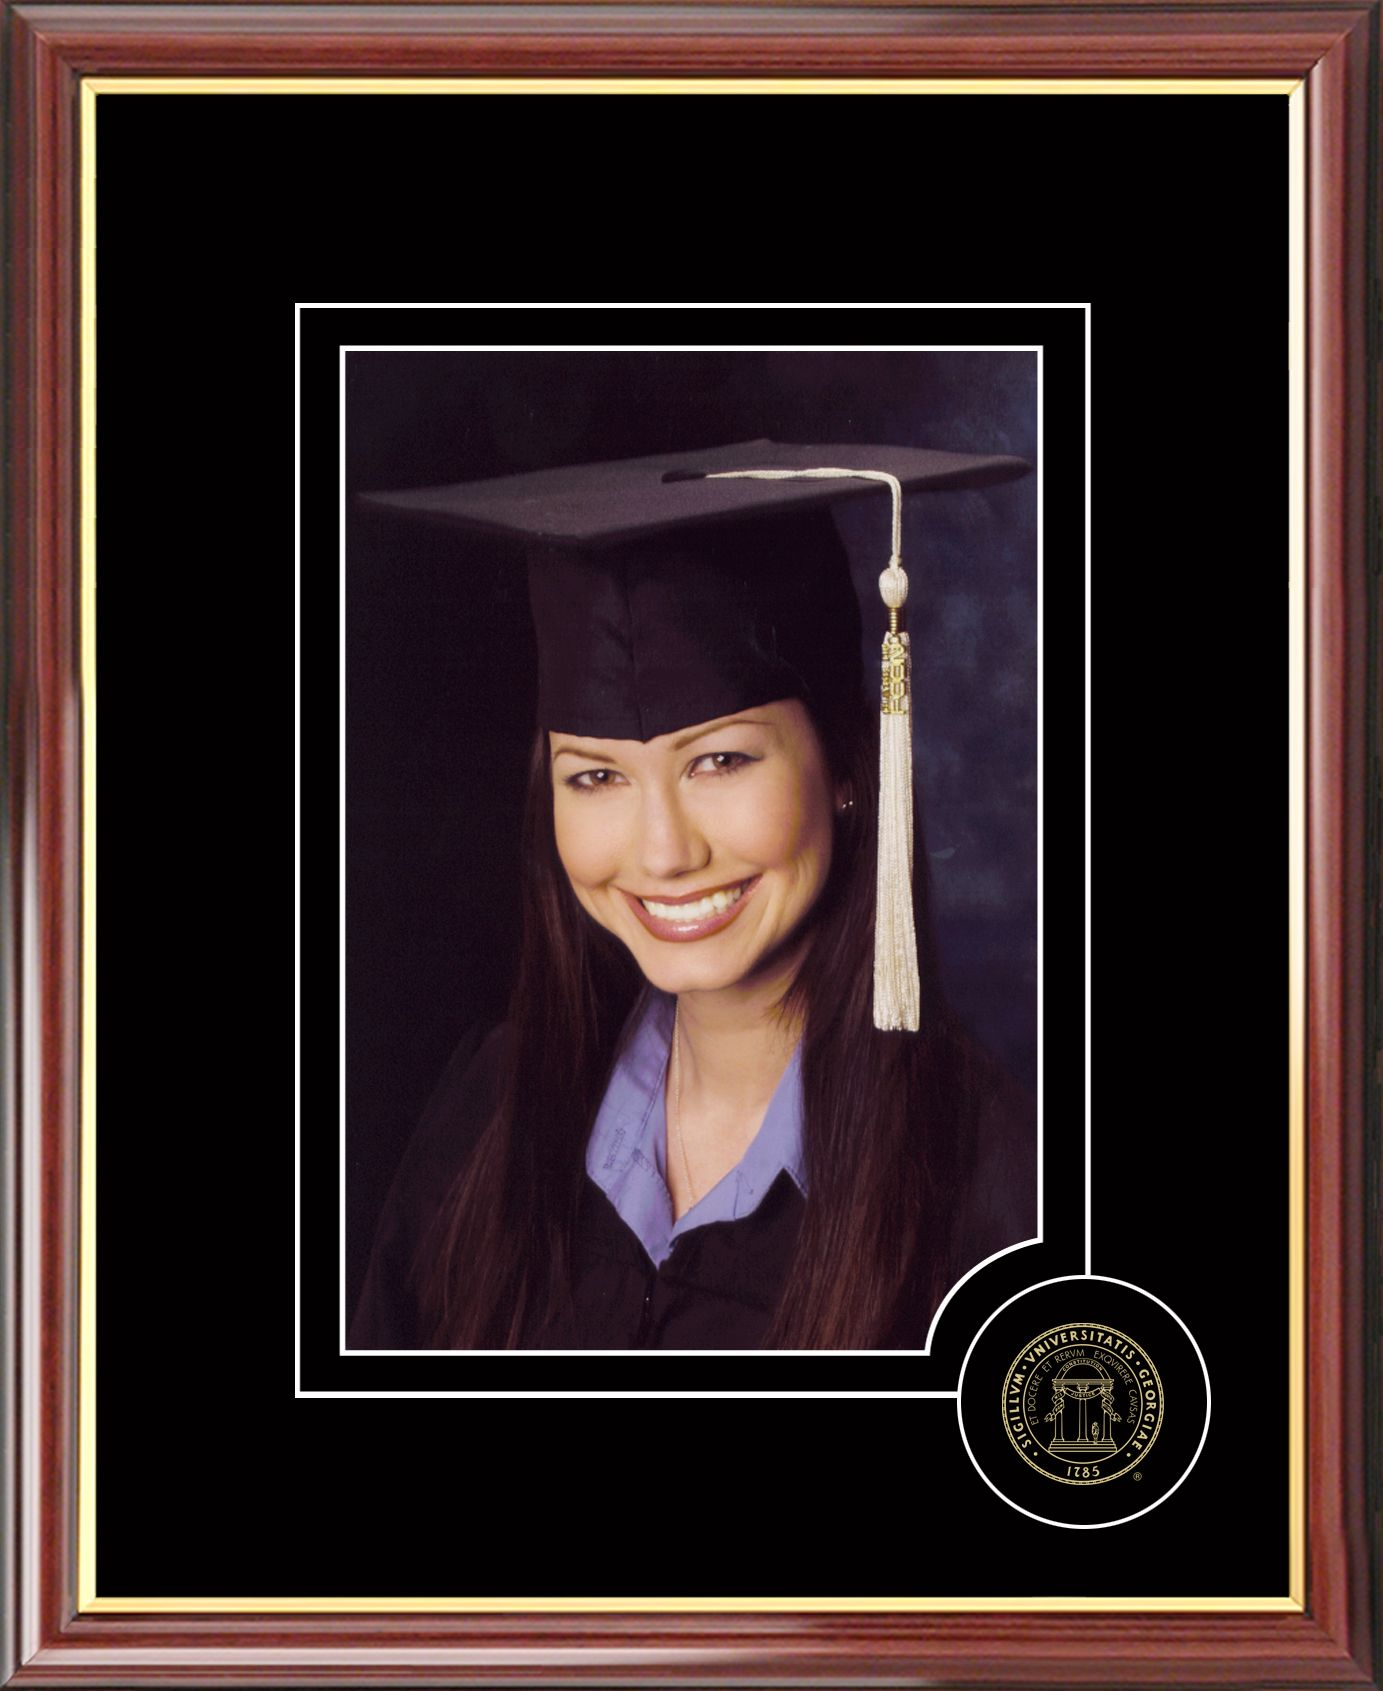 University of Georgia 5X7 Graduate Portrait Frame